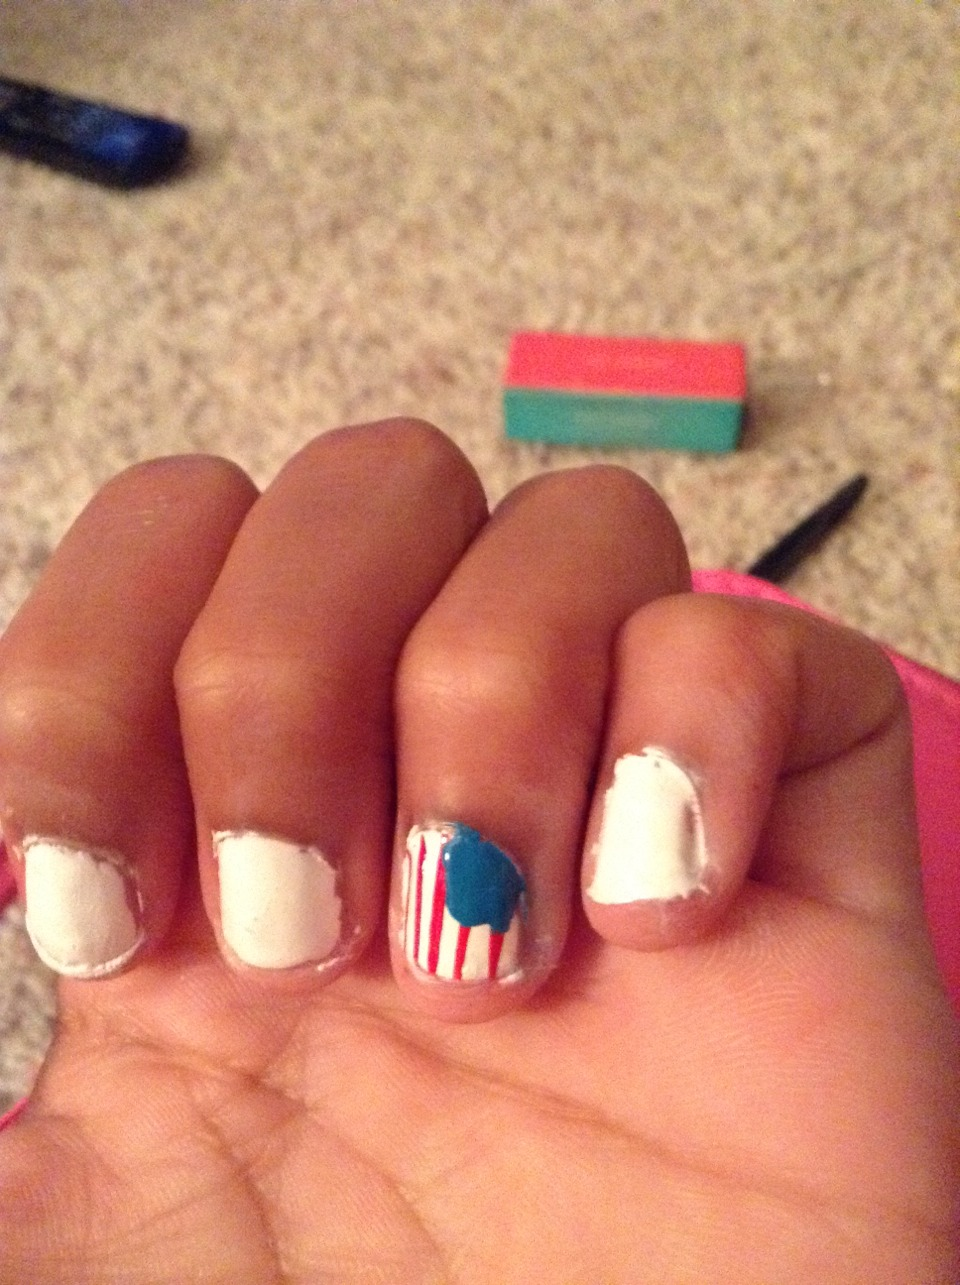 Next make a small square shape in the top corner of the nail. 🇺🇸